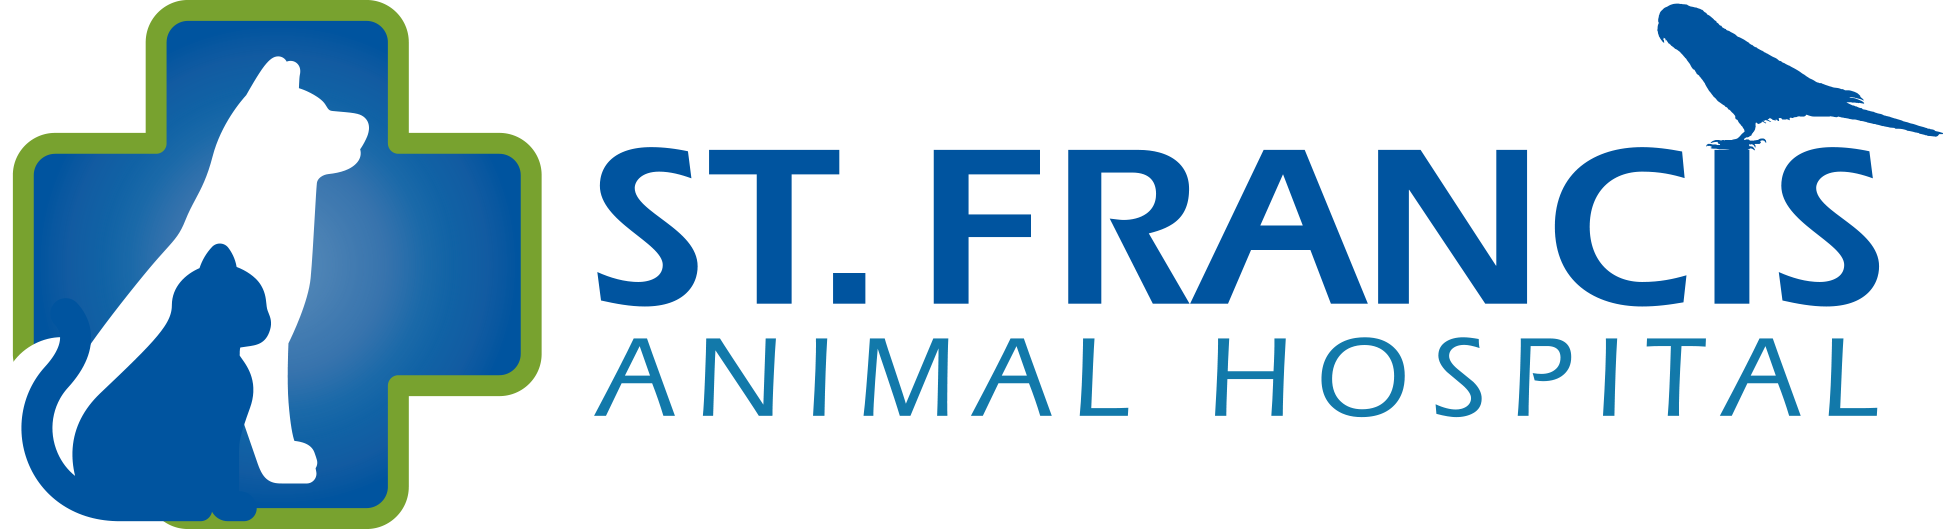 St. Francis Animal Hospital logo